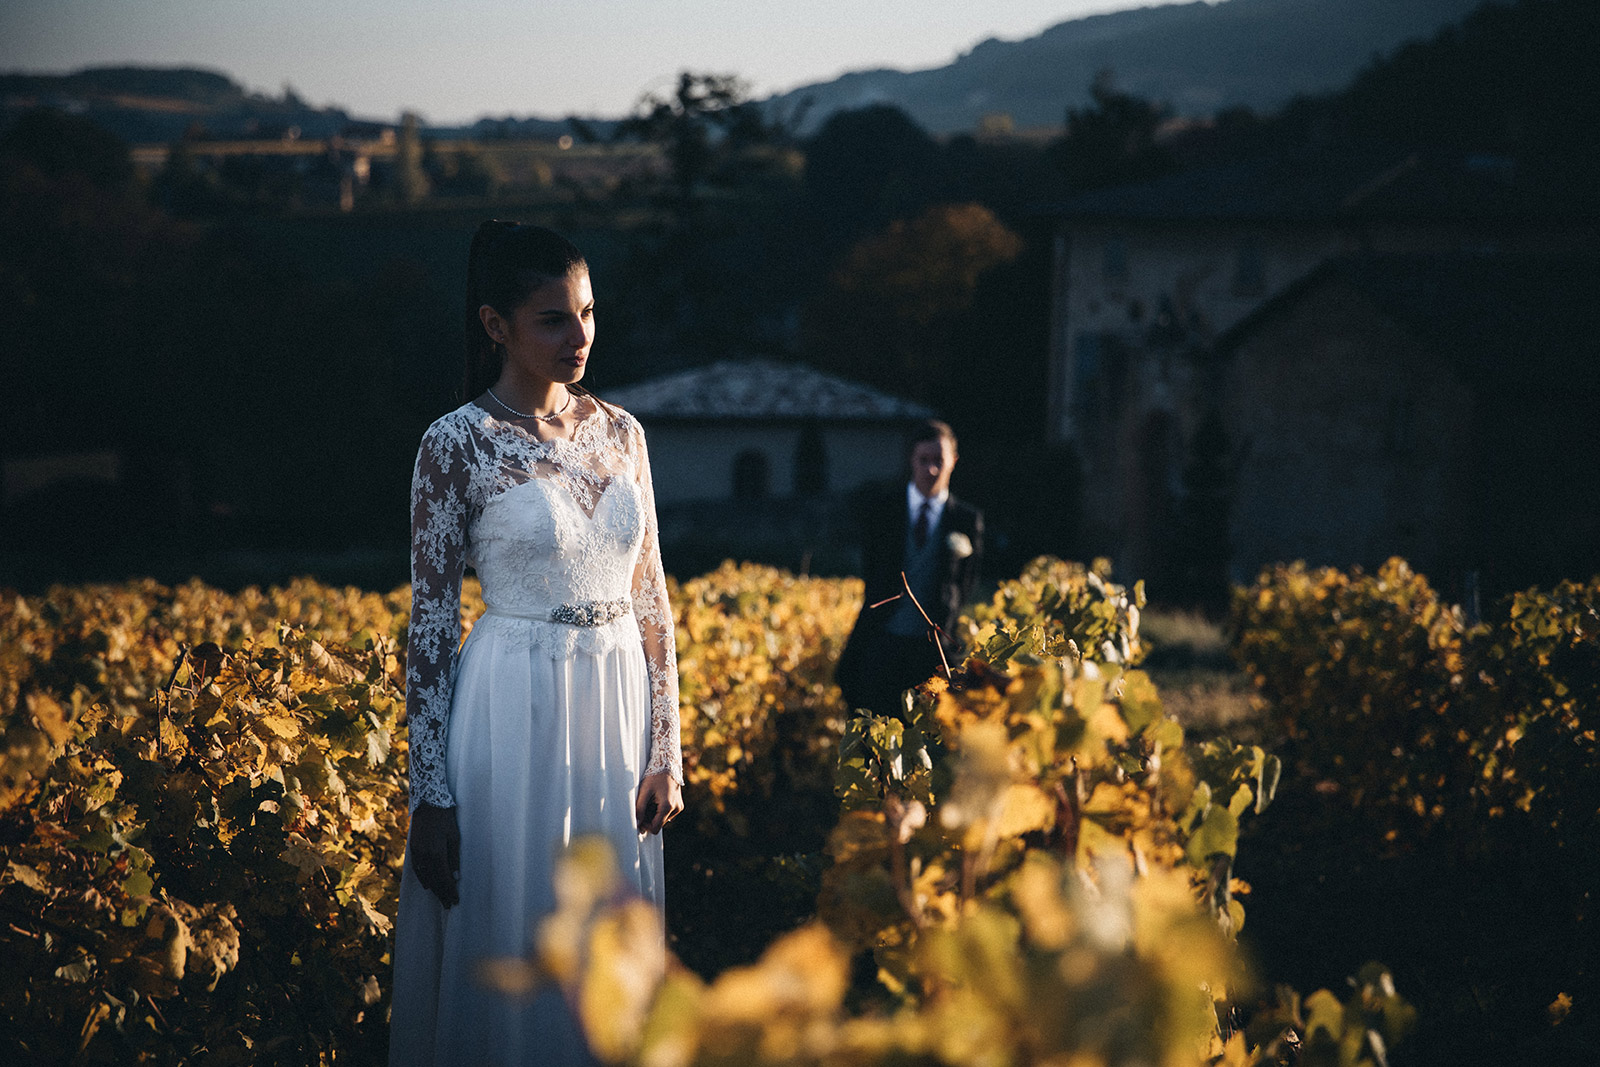 Elegant autumn wedding photographer Jarnioux Photographe de mariage chic automne Jarnioux